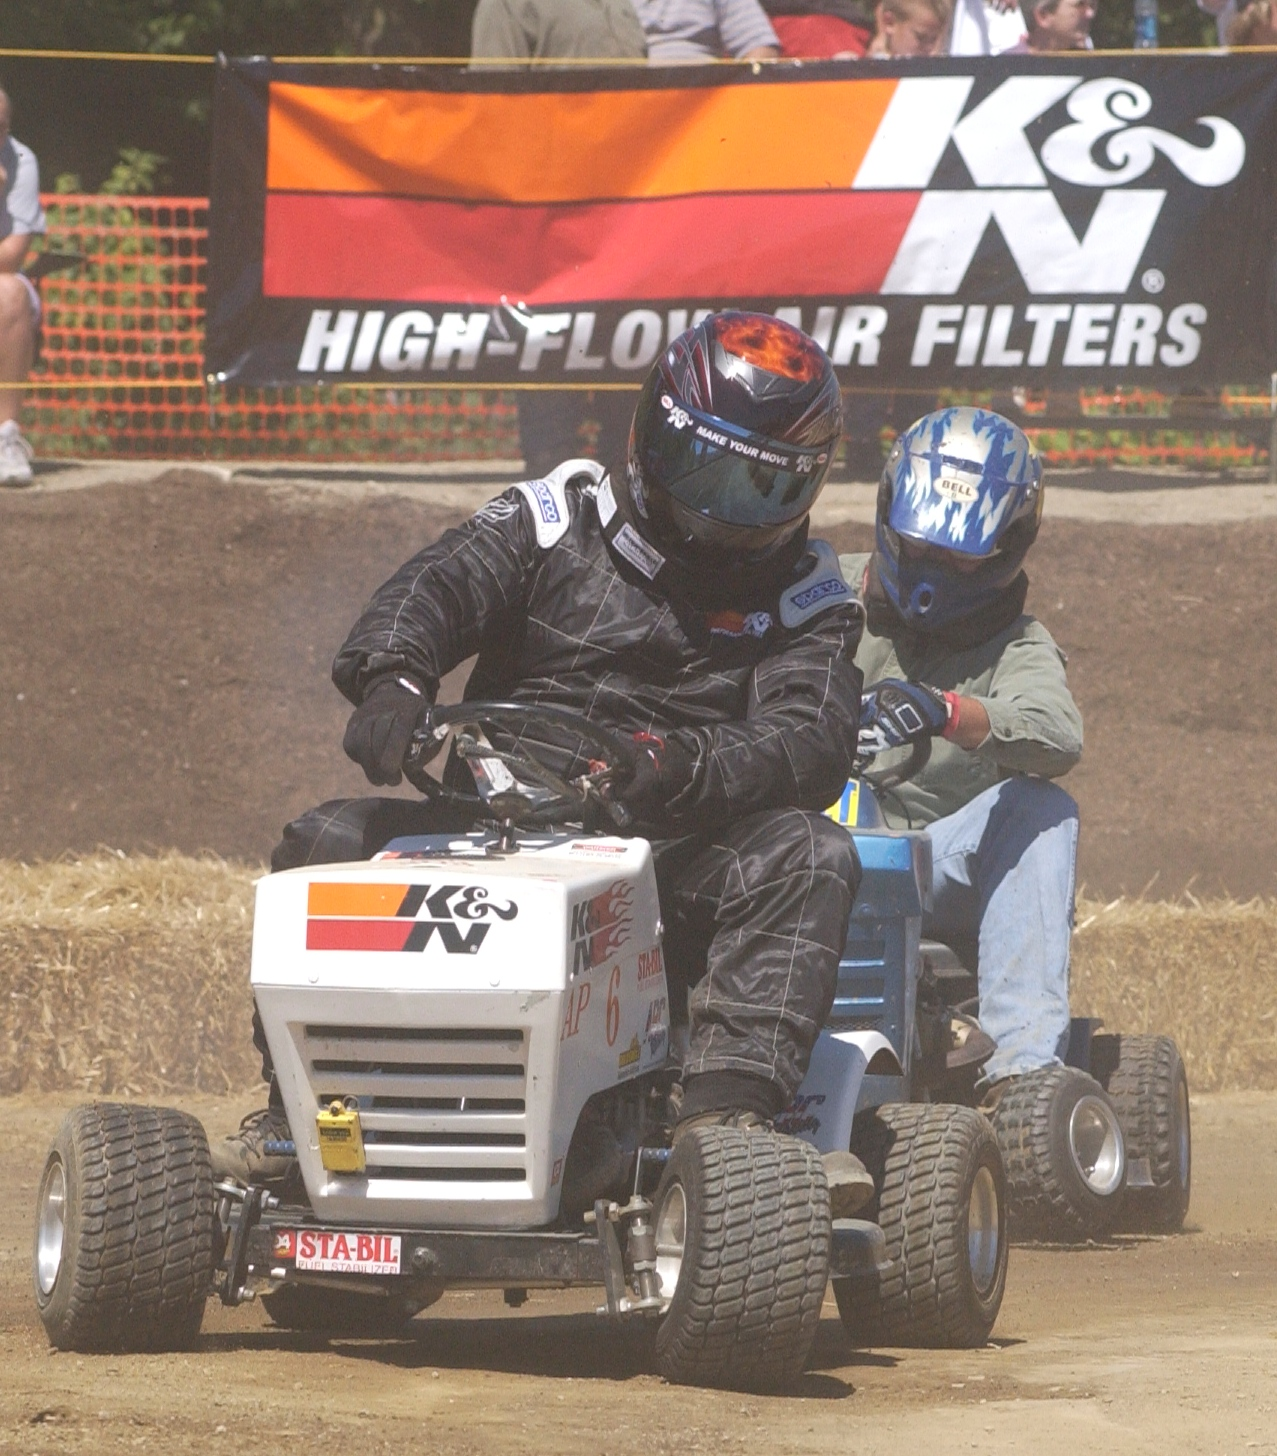 Lawn Mower Racing >> Lawn Mower Racing On First Day of Spring